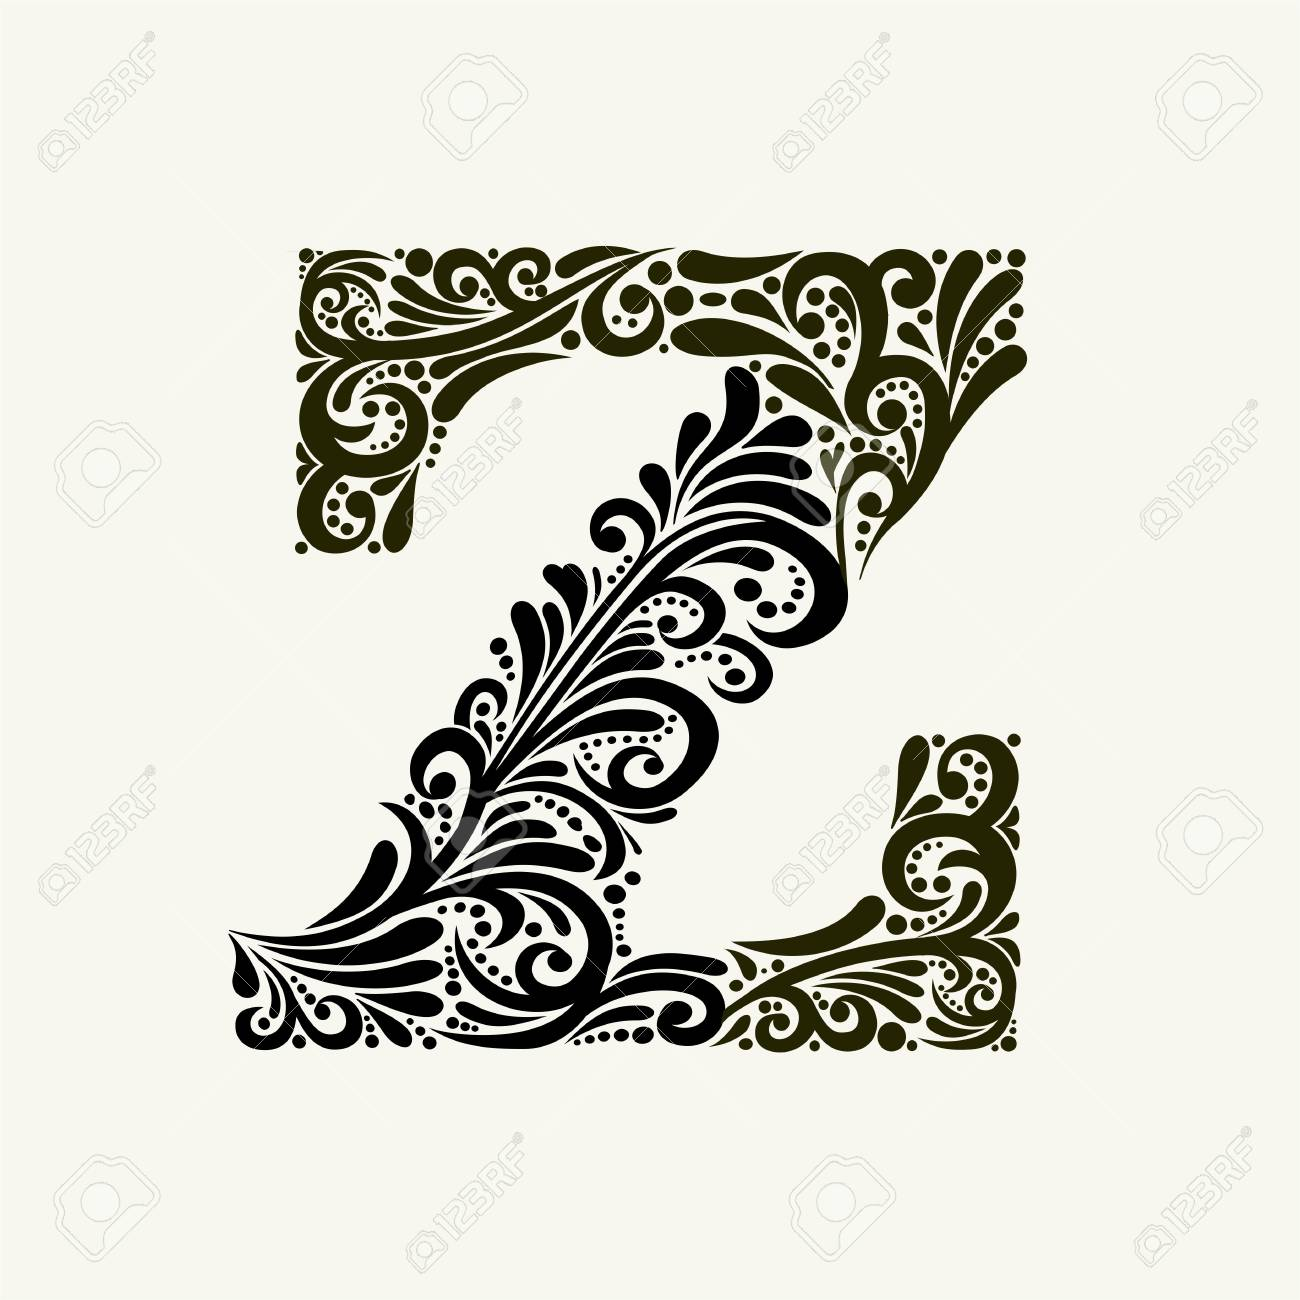 Elegant capital letter Z in the style of the Baroque. - 122200234